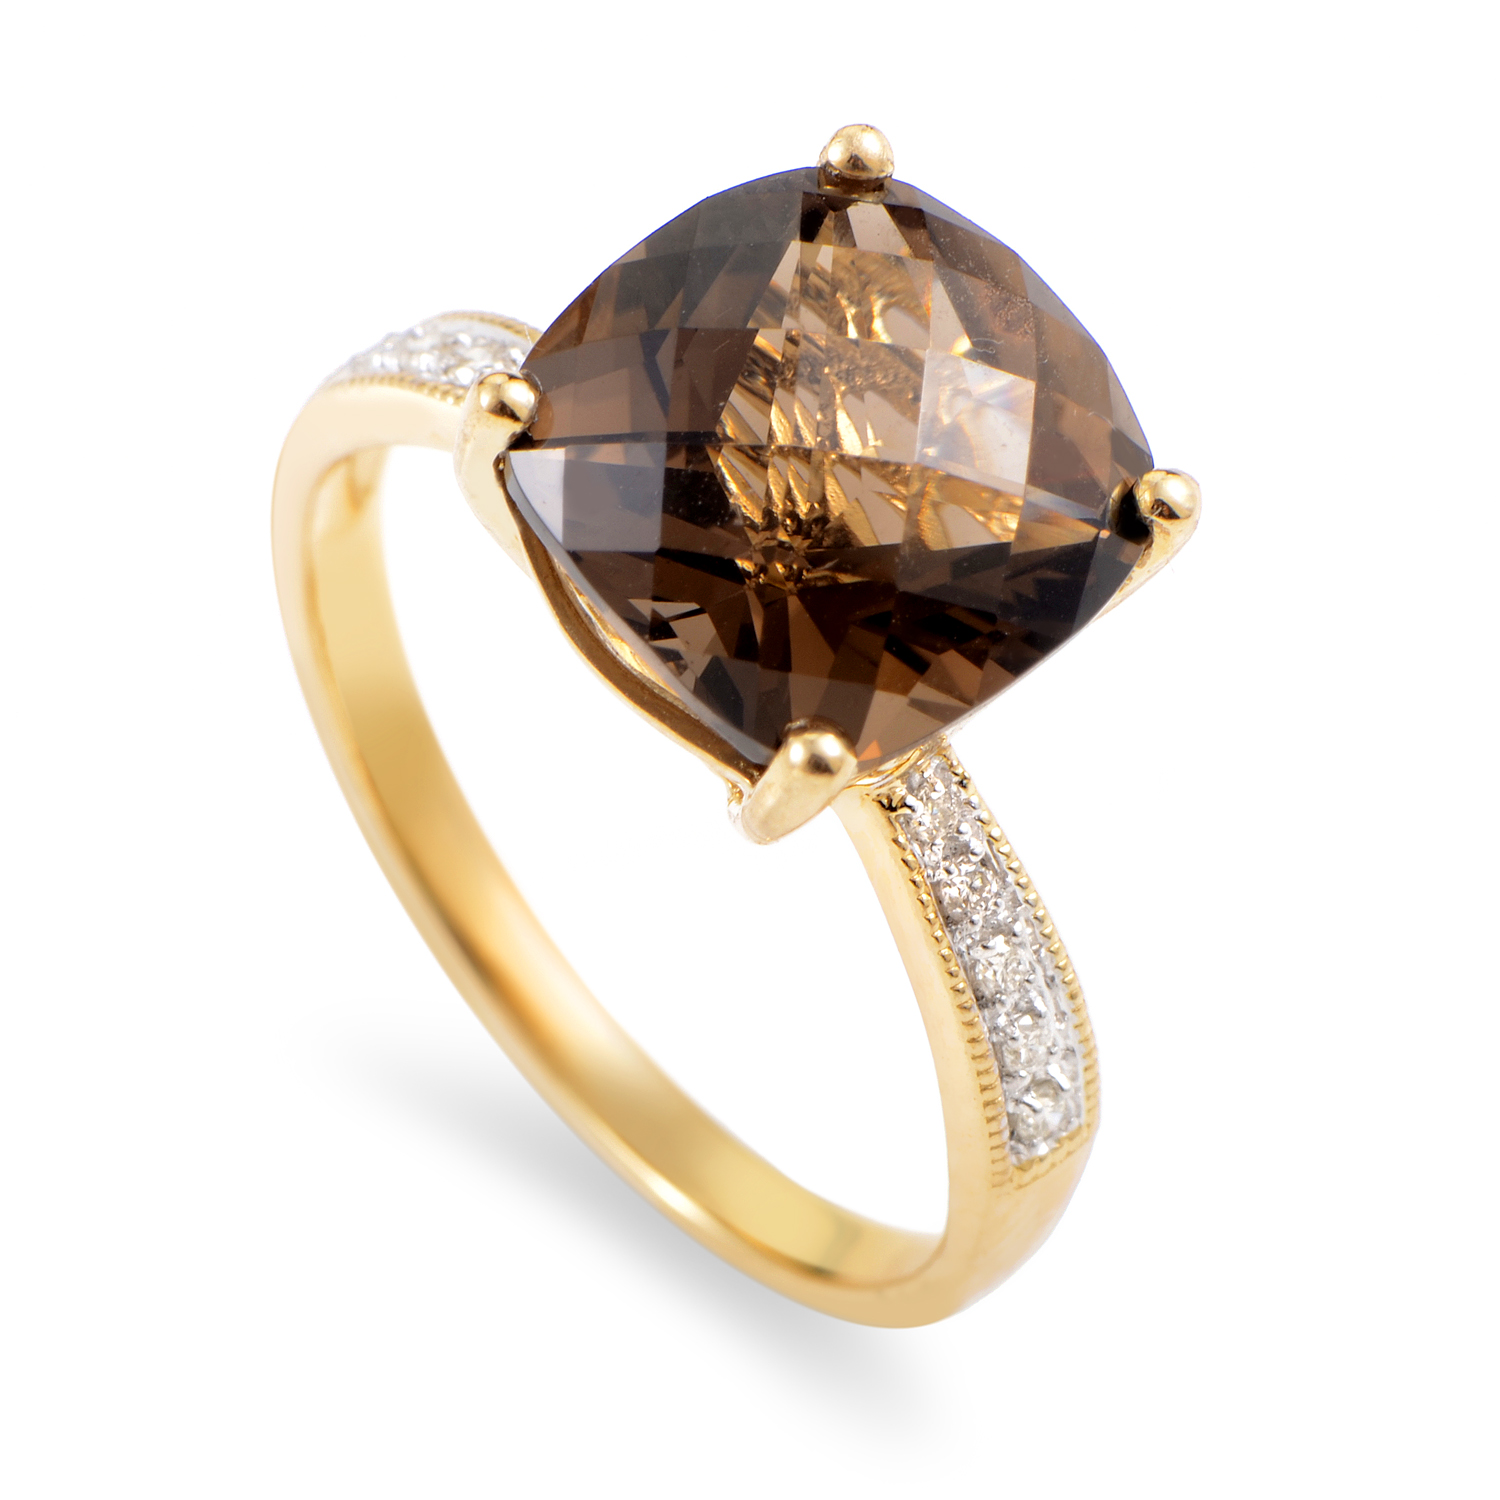 Women's 14K Yellow Gold Diamond & Smoky Quartz Ring RC4